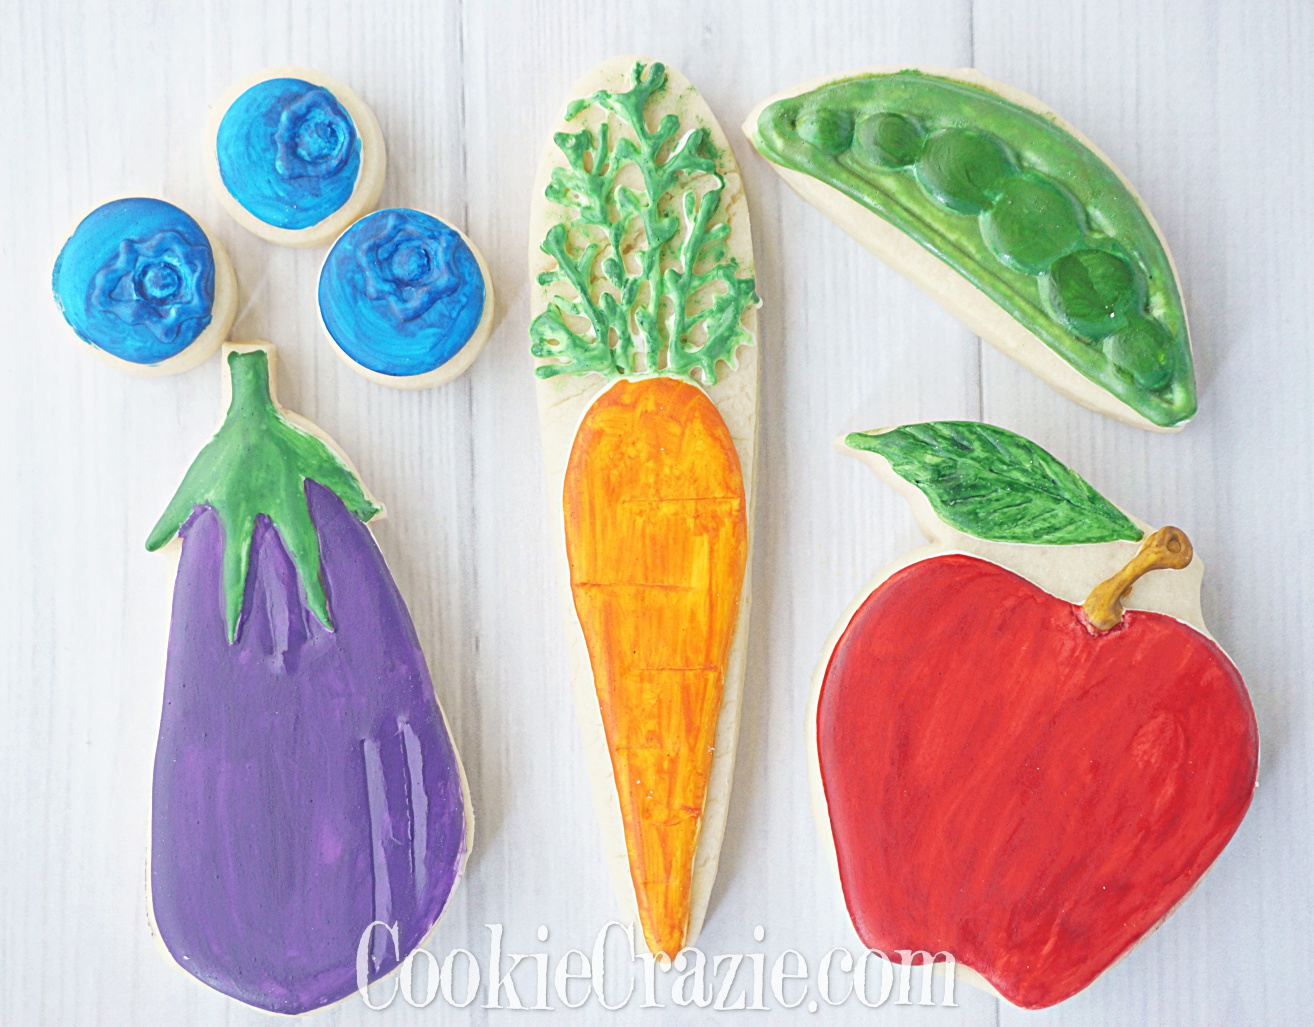 Carrot Decorated Sugar Cookie YouTube video  HERE